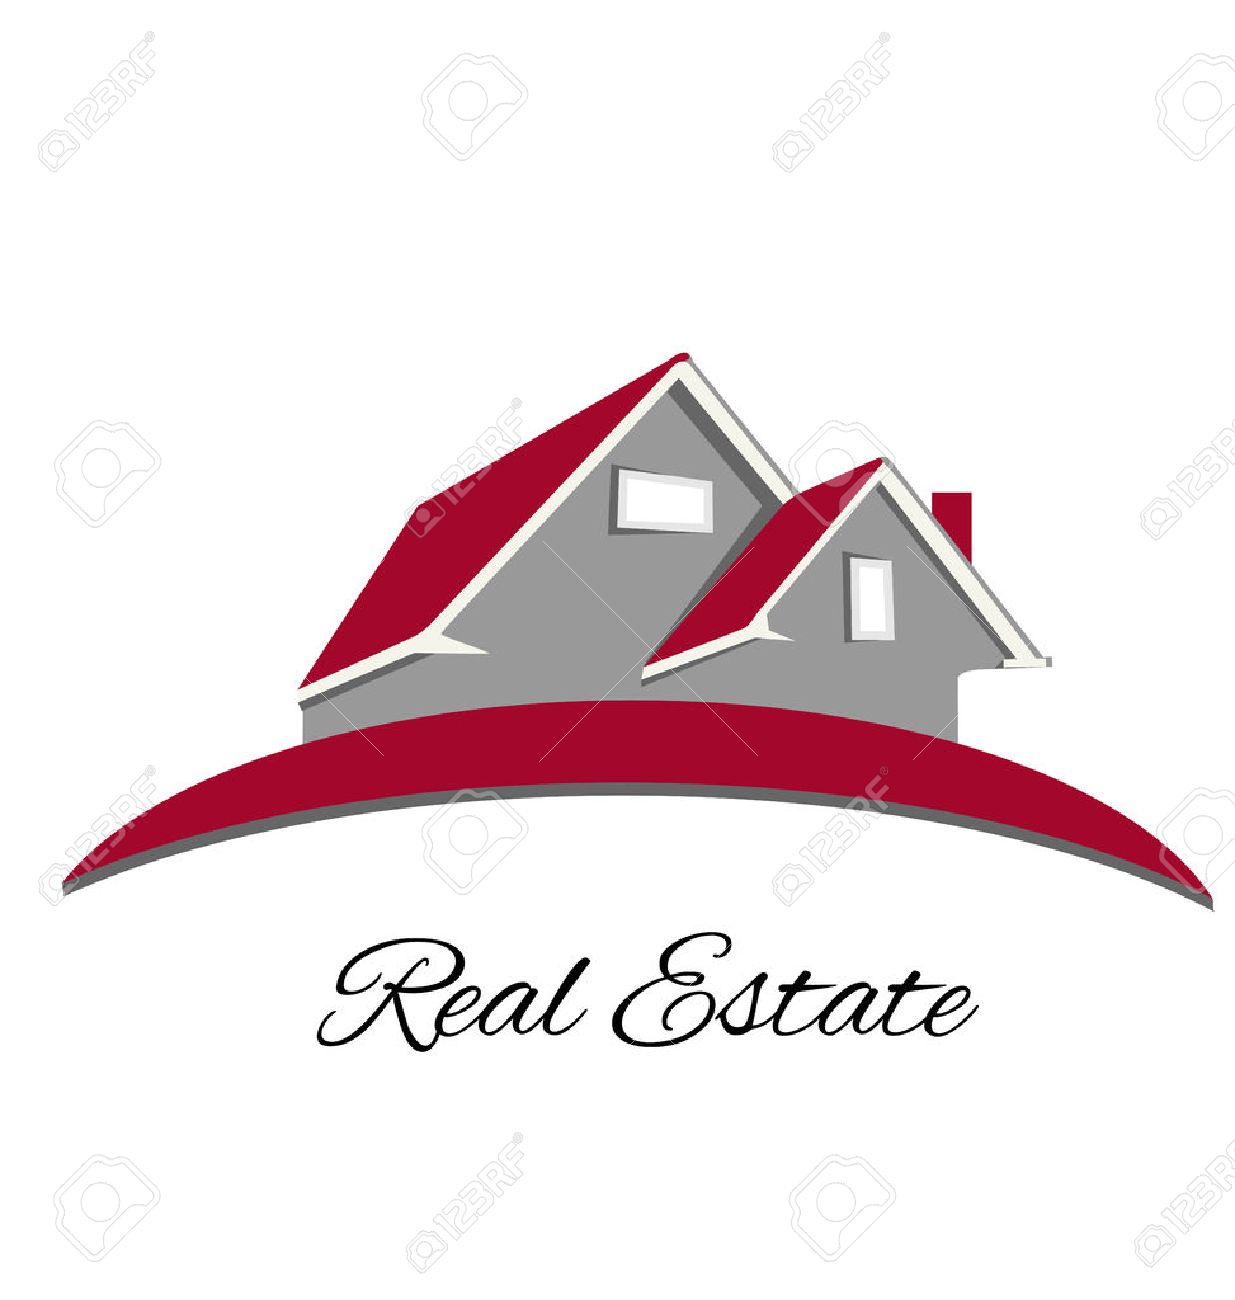 Real Estate Red House Logo Vector Design Royalty Free Cliparts